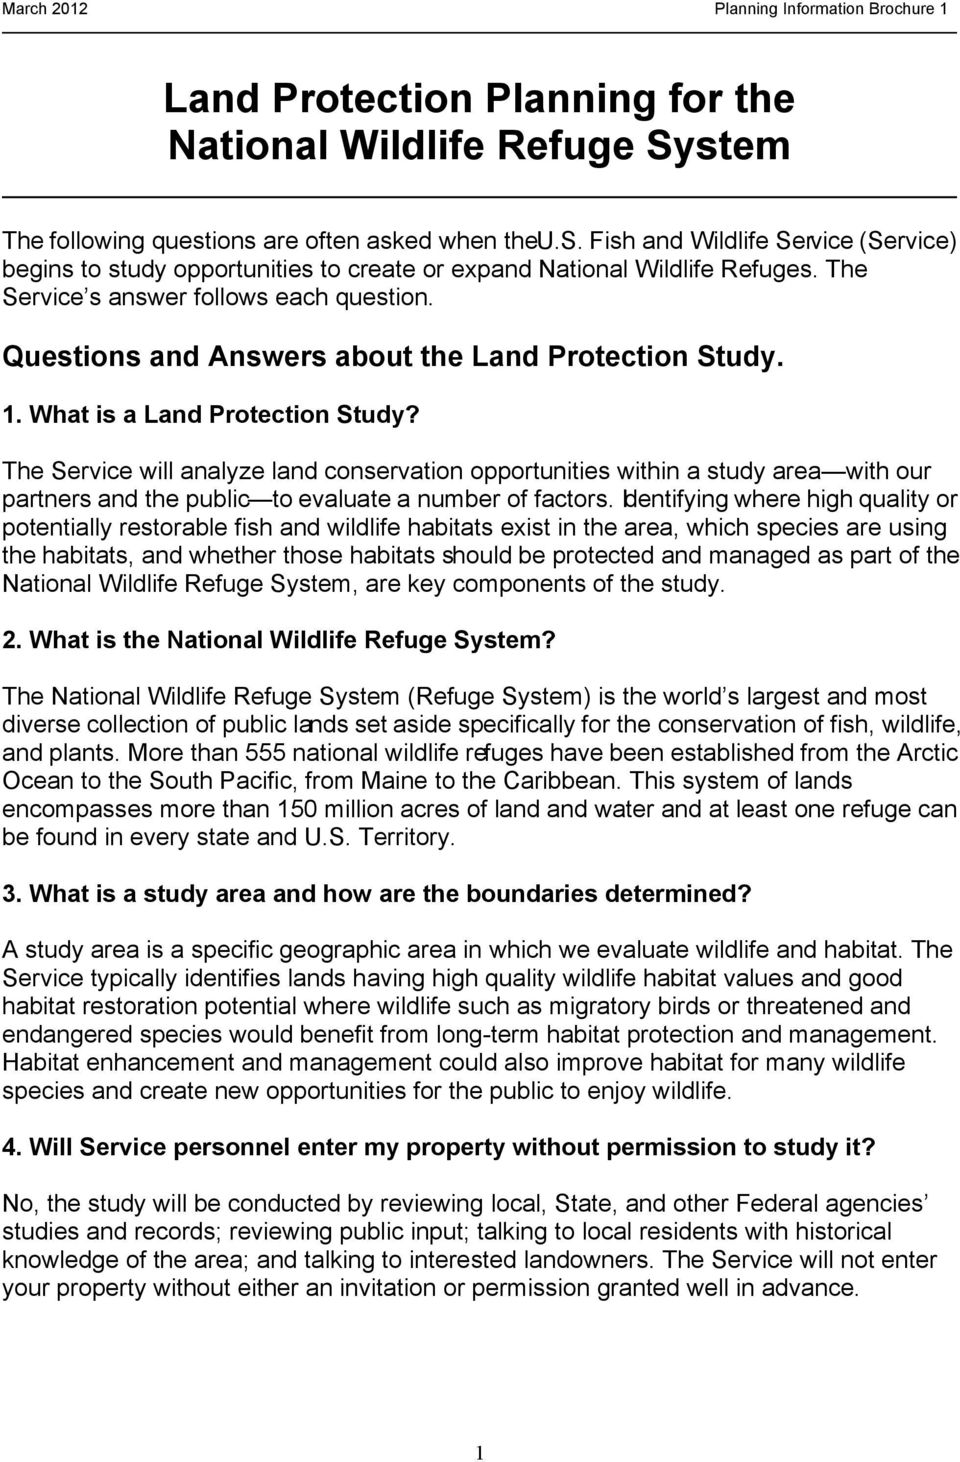 The Service s answer follows each question. Questions and Answers about the Land Protection Study. 1. What is a Land Protection Study?